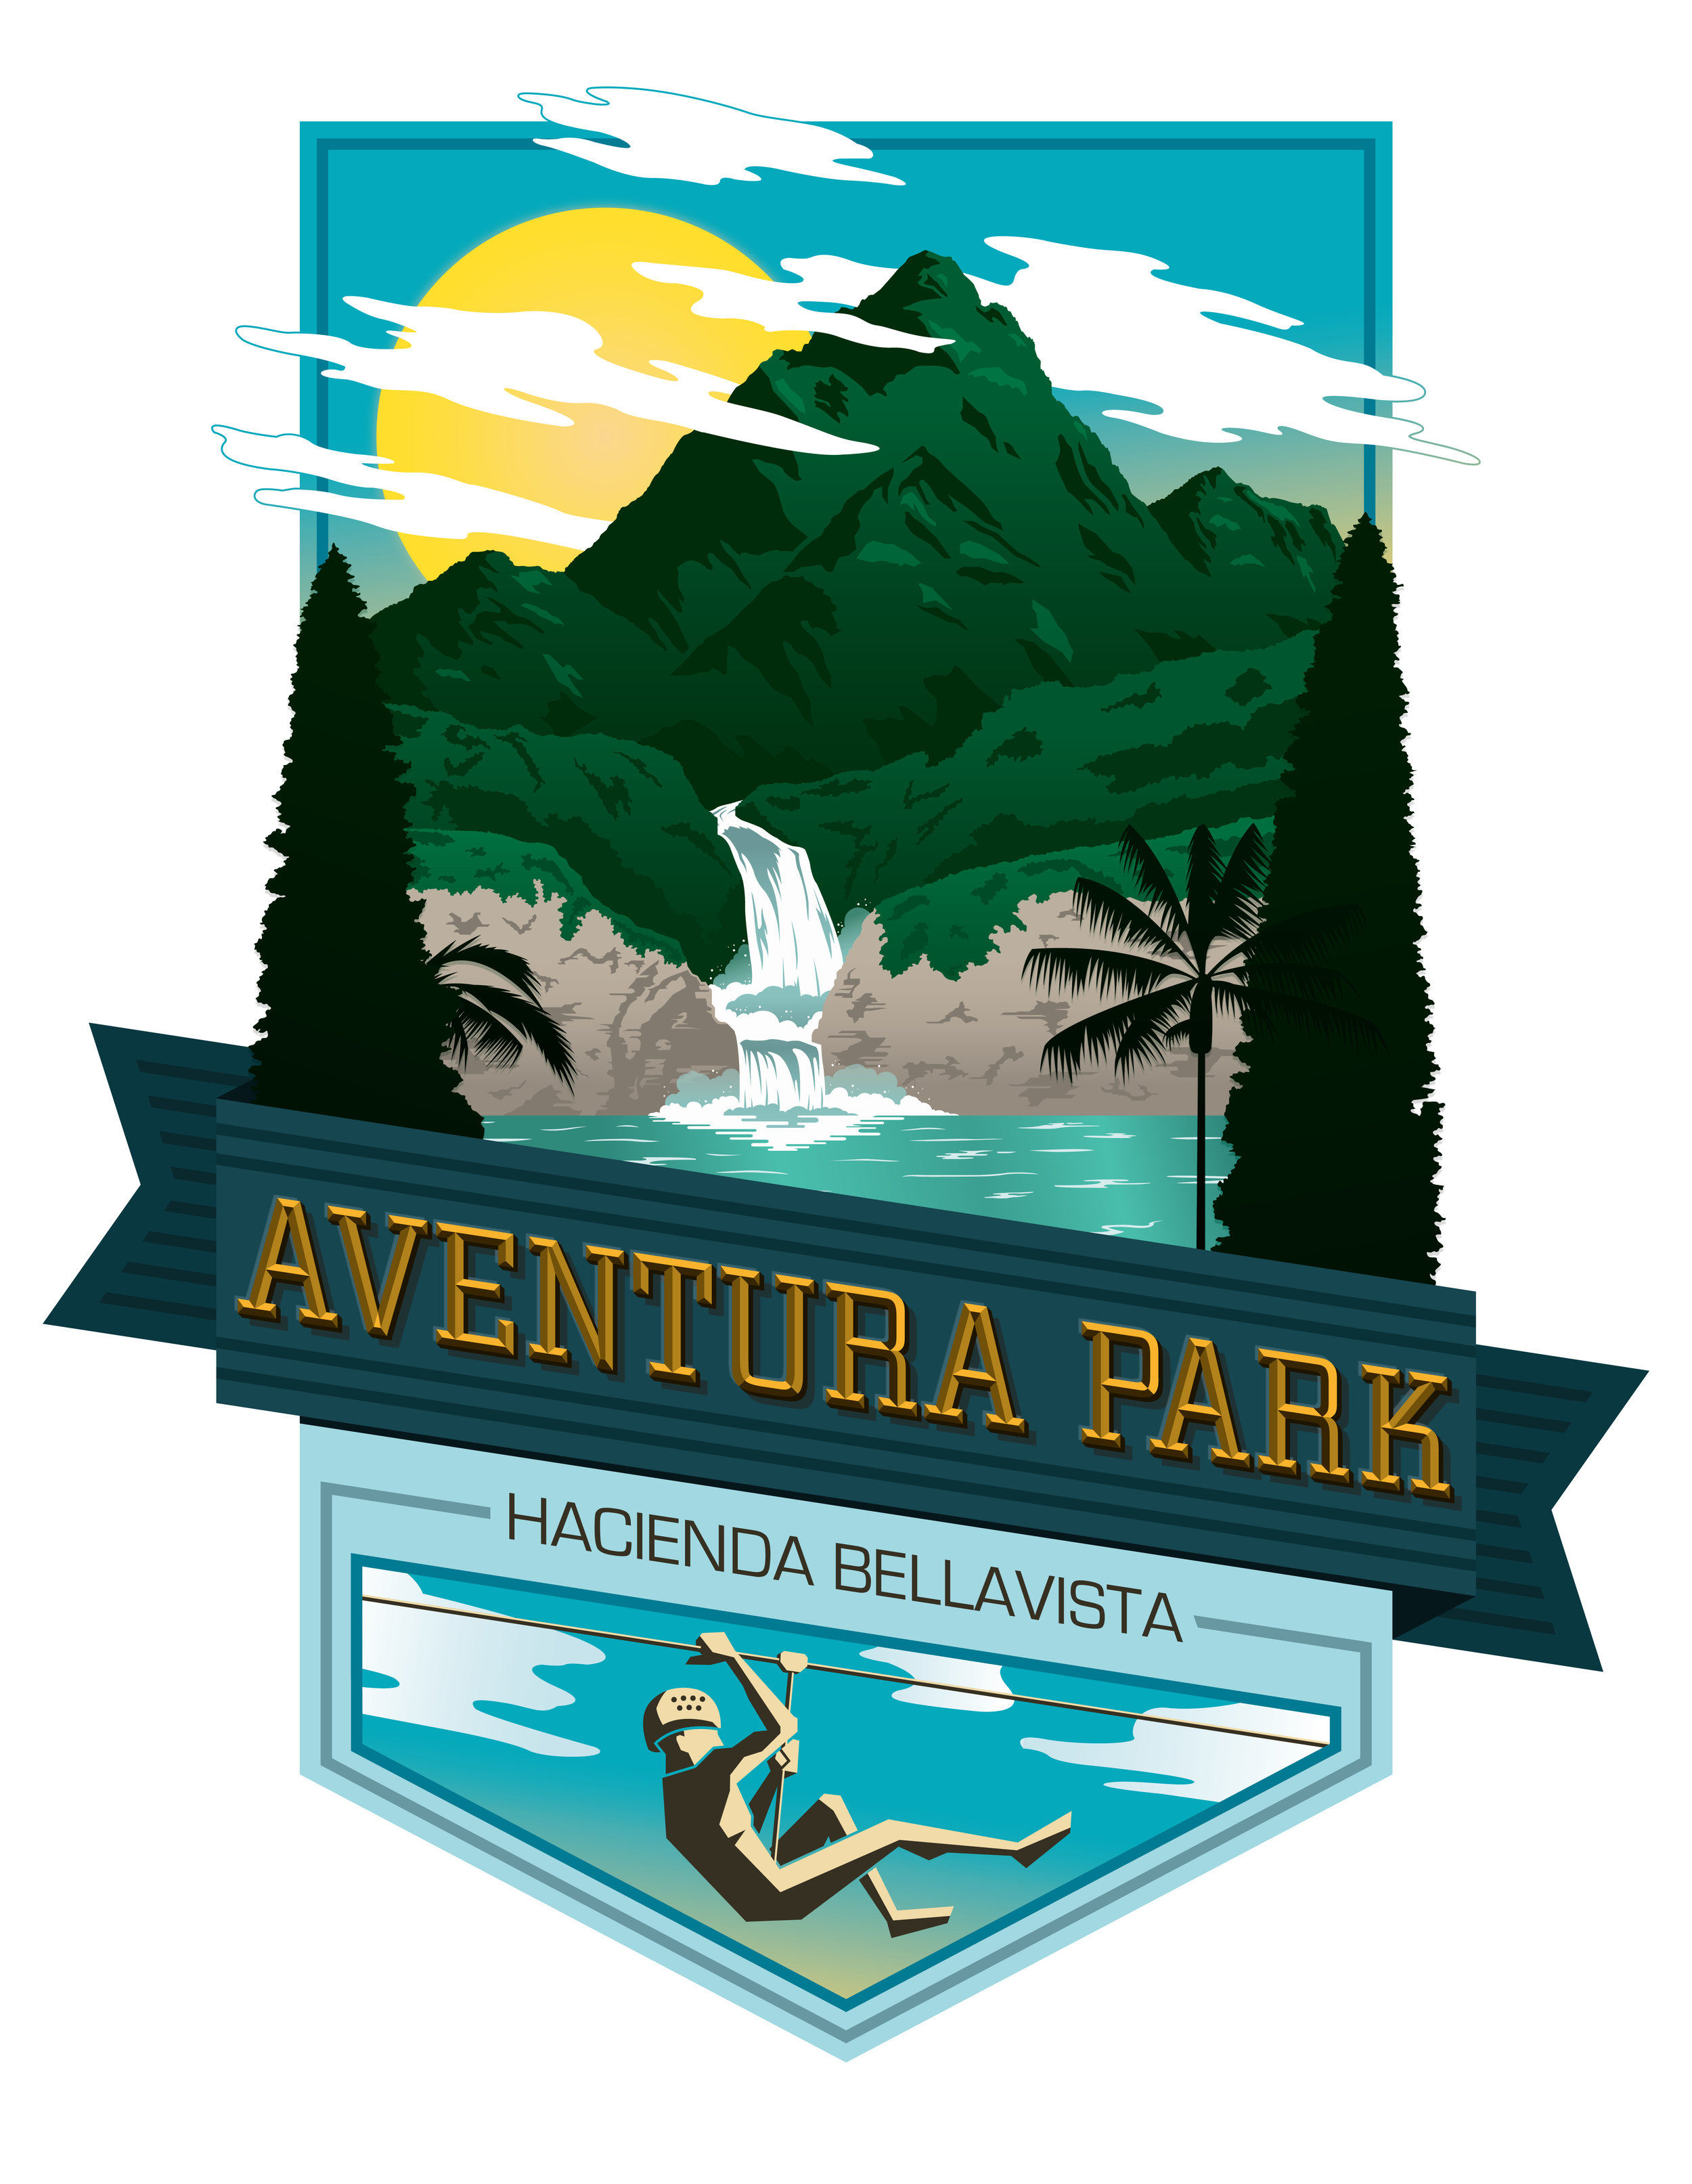 AVENTURA PARK - BRANDING | FREELANCEAventura Park is an Adventure park in Ecuador that specializes in zip-lining, boating and other outdoor activities. Design concept was influenced by Ecuador's lush foliage and picturesque scenery.